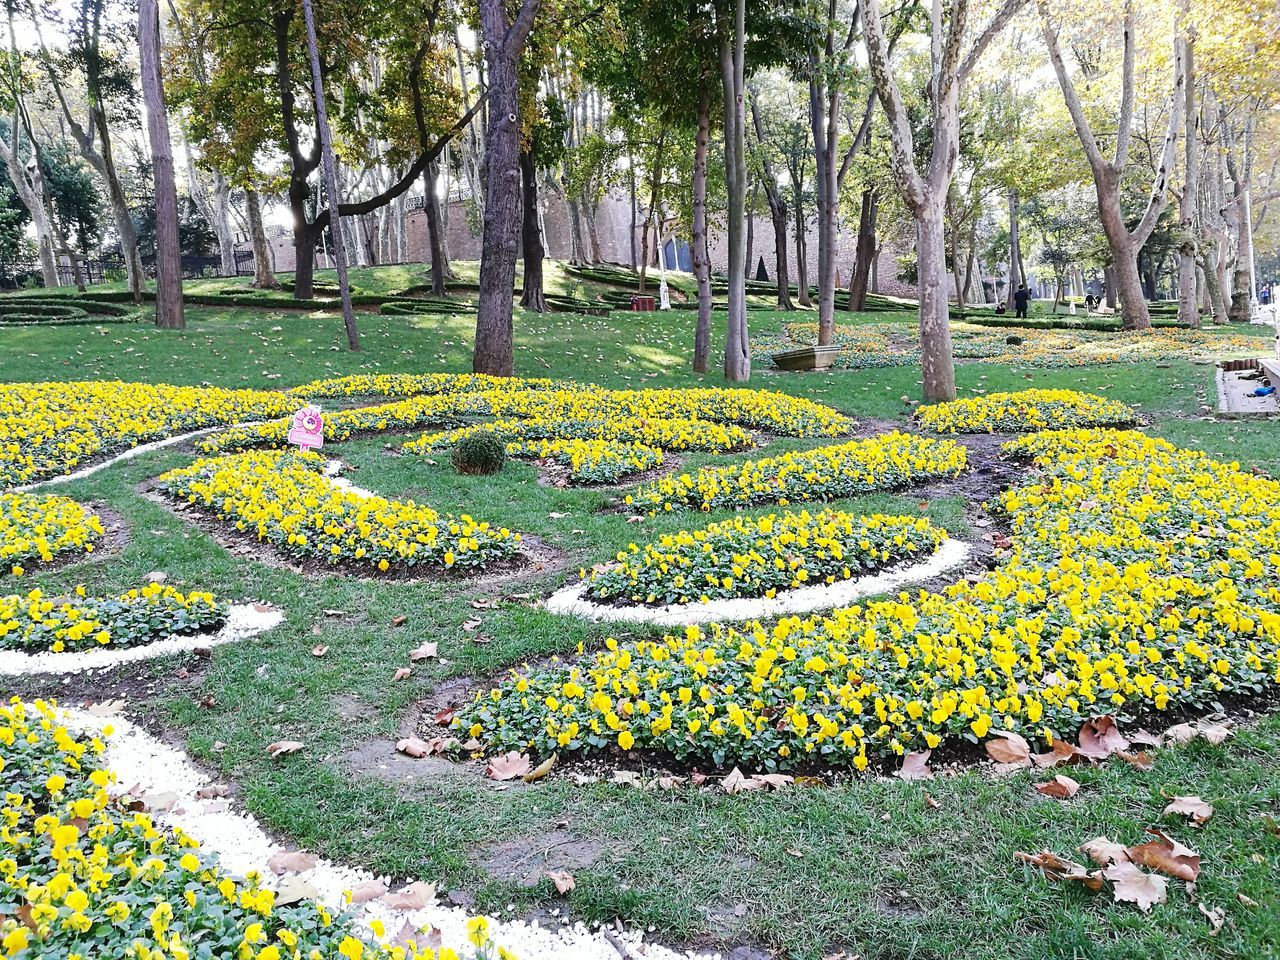 flower, growth, yellow, green color, nature, plant, park - man made space, flowerbed, beauty in nature, outdoors, tree, grass, day, no people, botanical garden, fragility, flower head, freshness